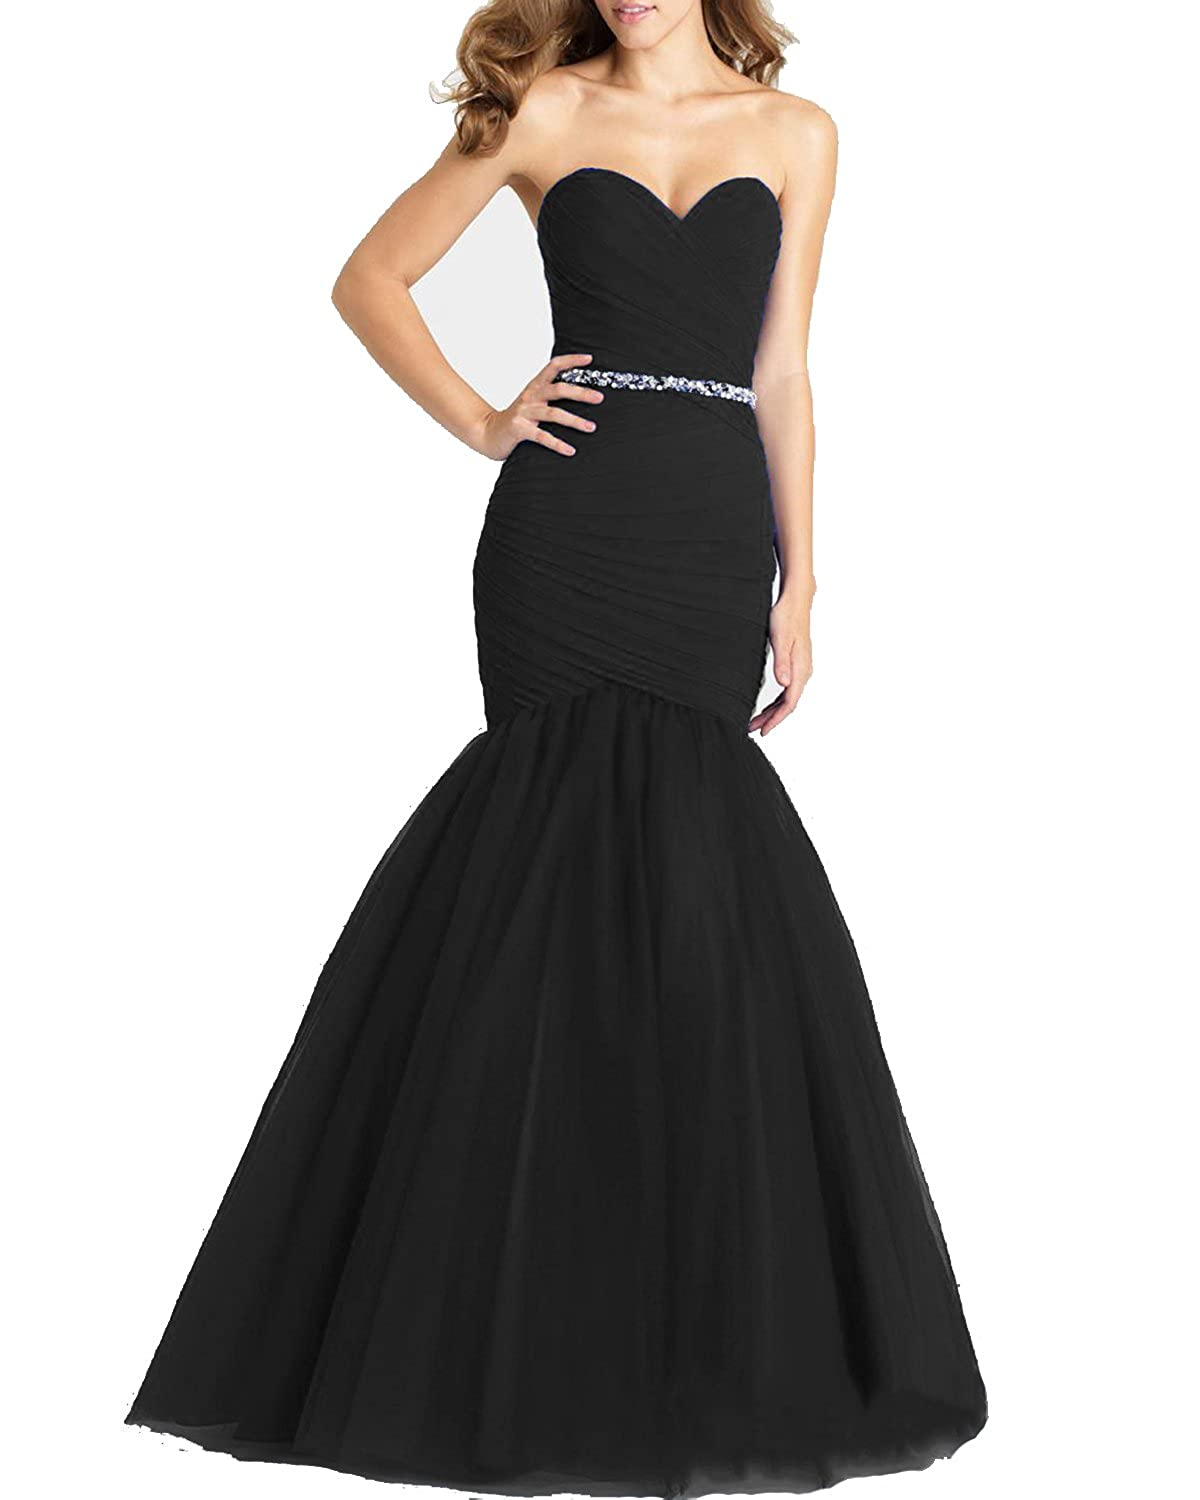 Black3 Lily Wedding Womens Strapless Lace Mermaid Wedding Dresses 2019 Long Sweetheart Bridal Gown Dress